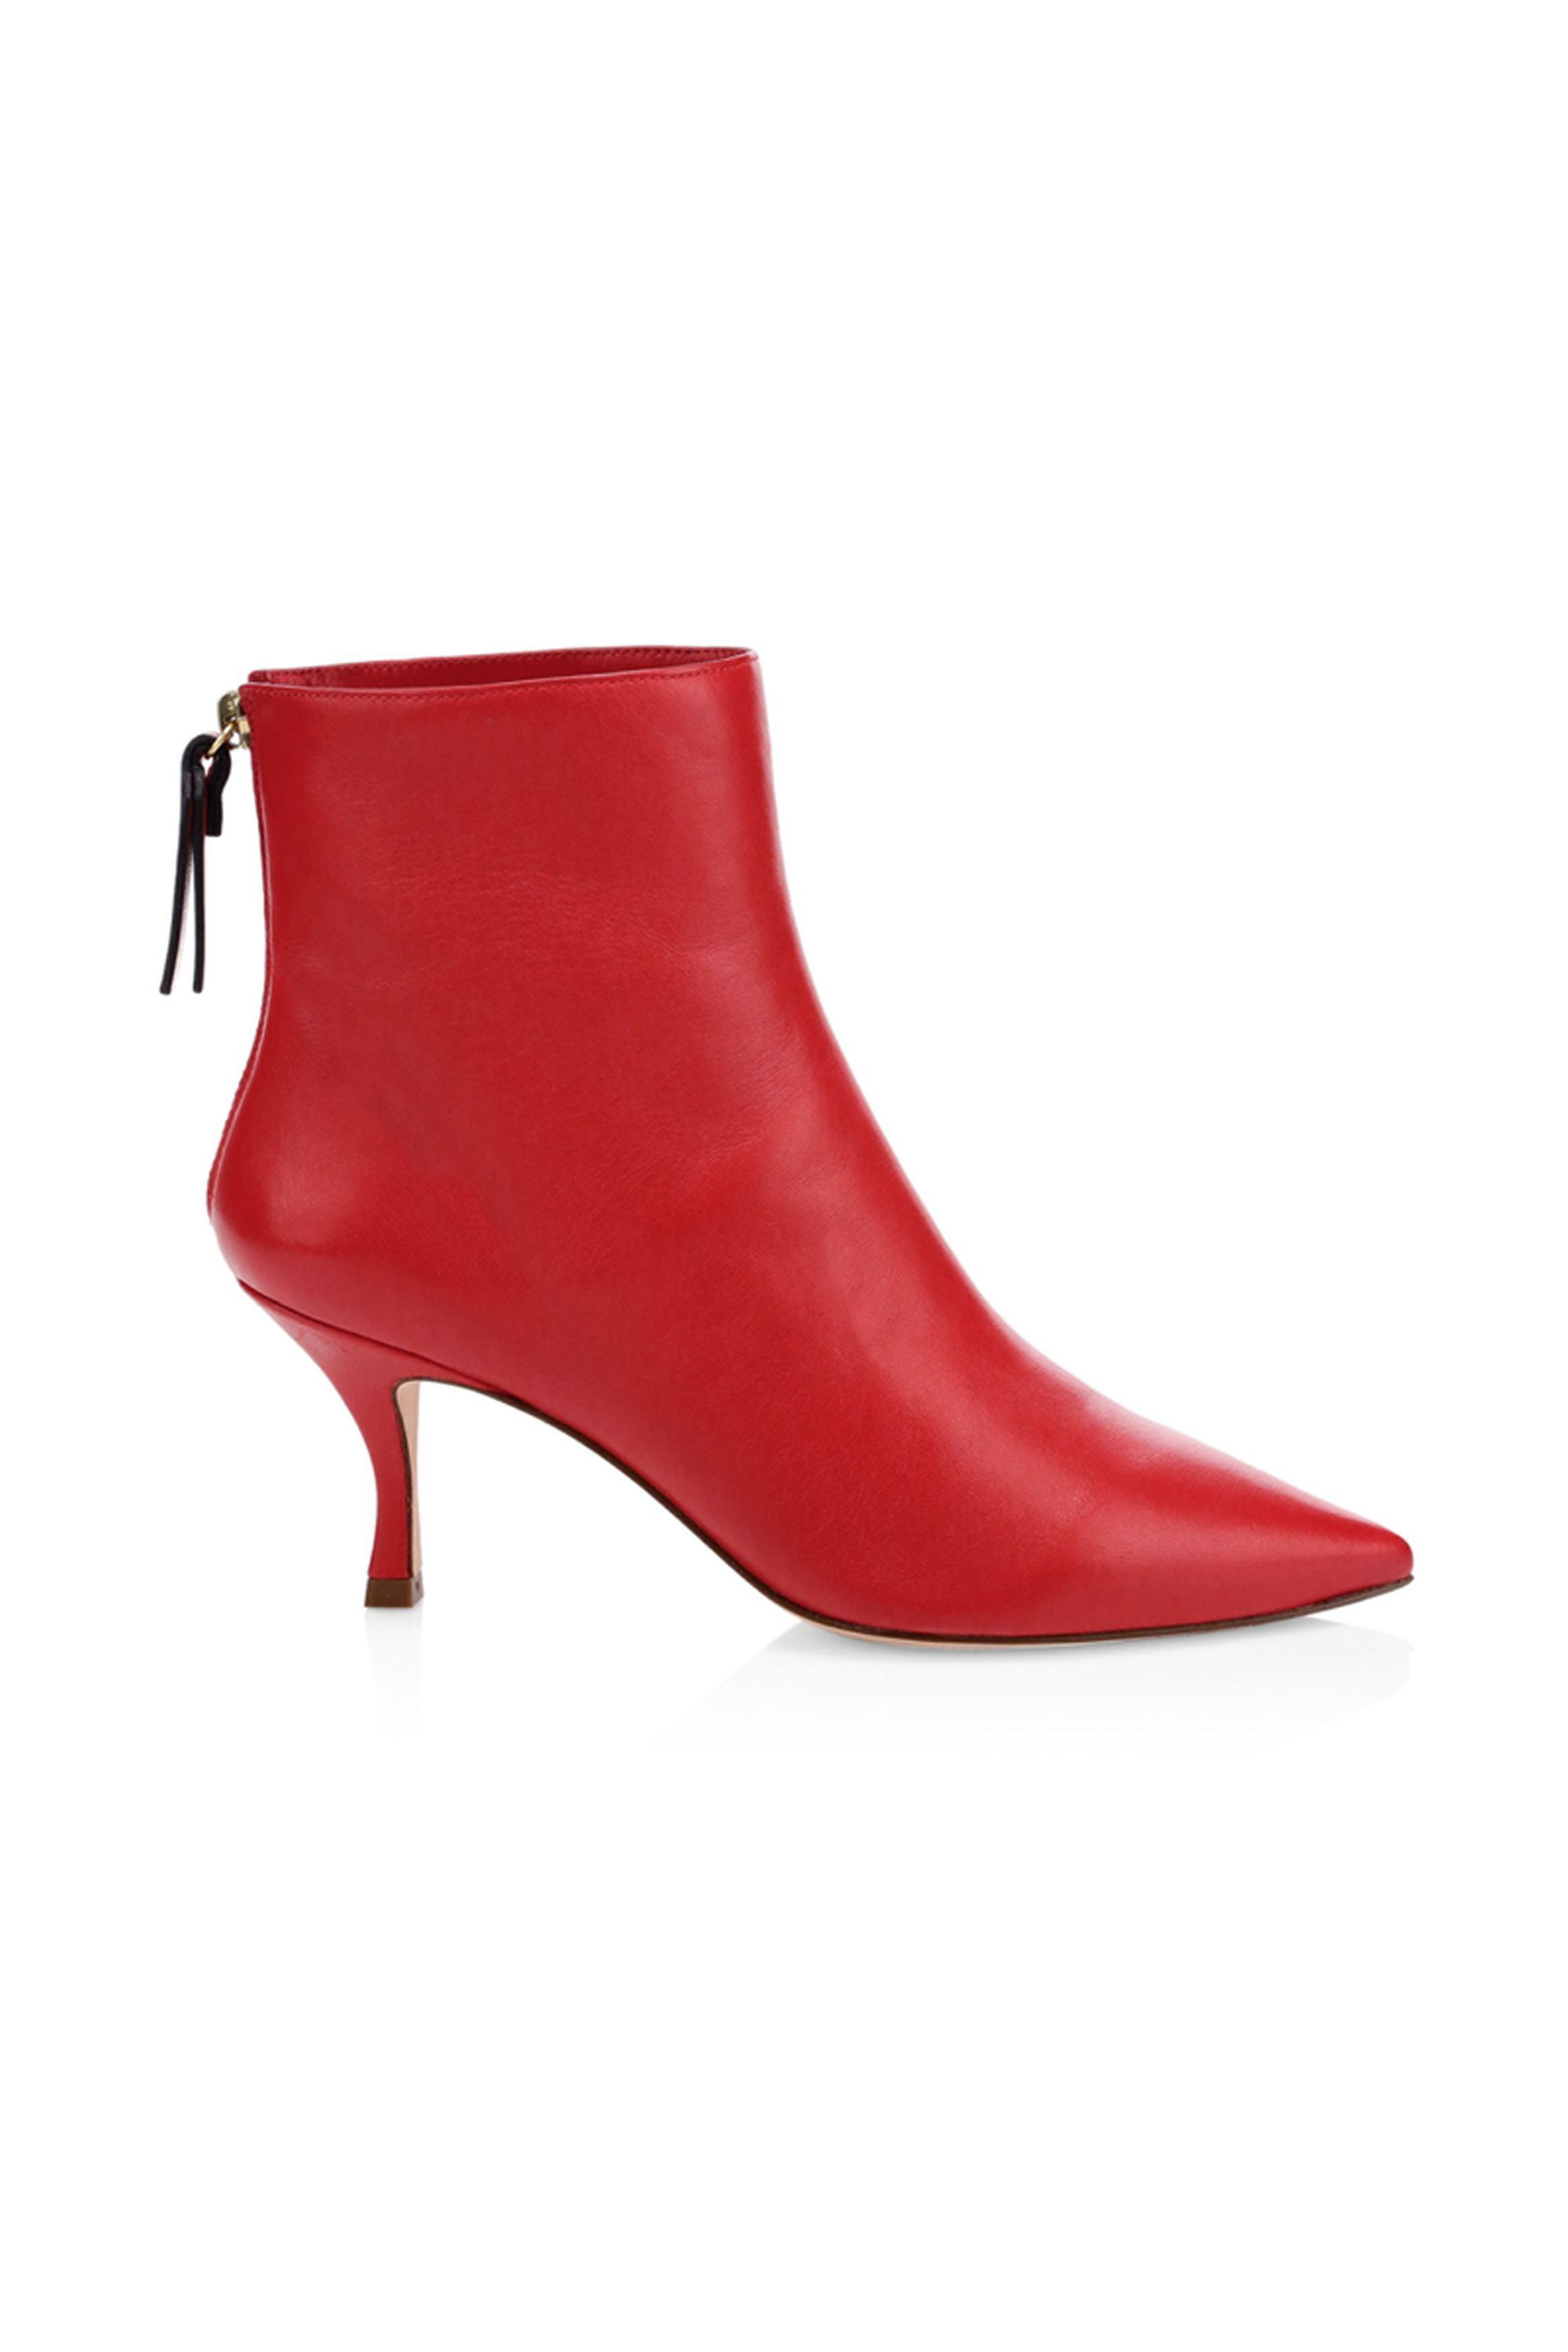 57feb36c0c794 Best Fall Boot Trends — 23 Boots to Wear For Fall 2019